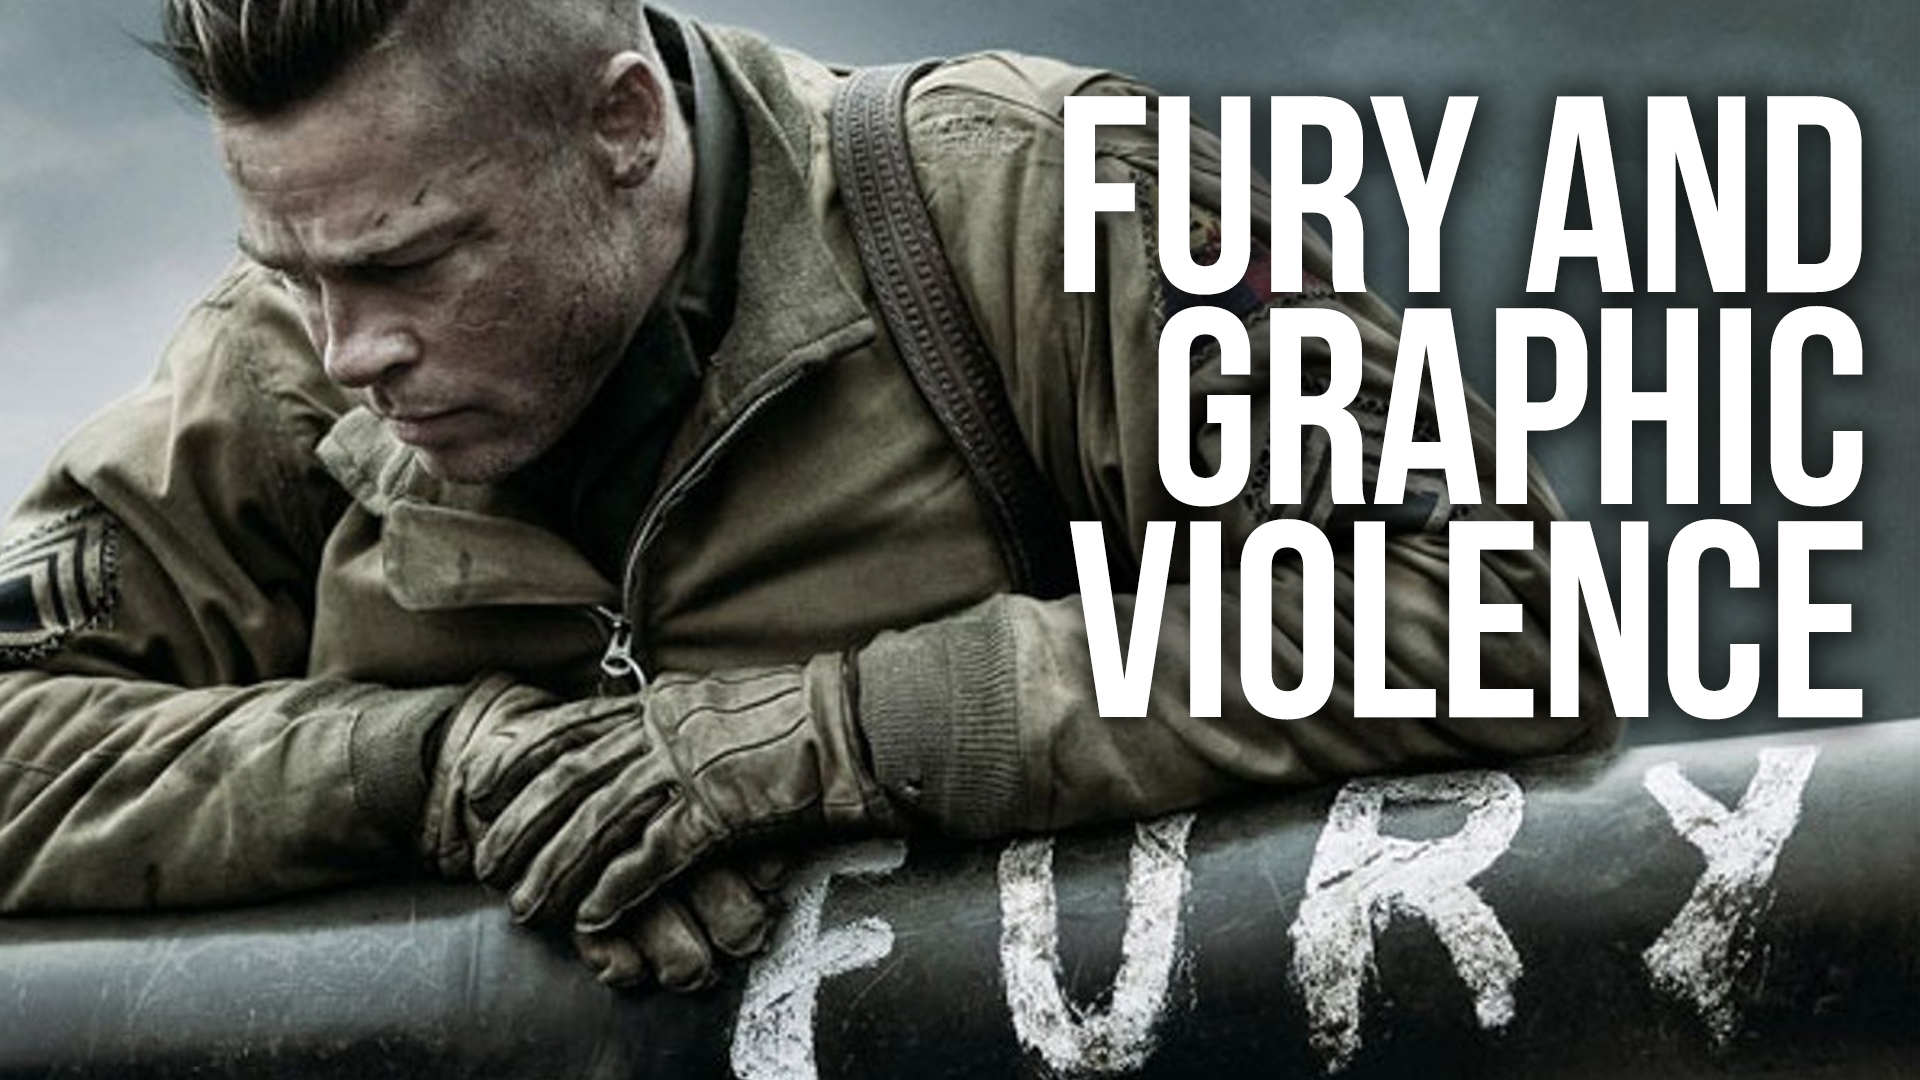 Fury and Graphic Violence